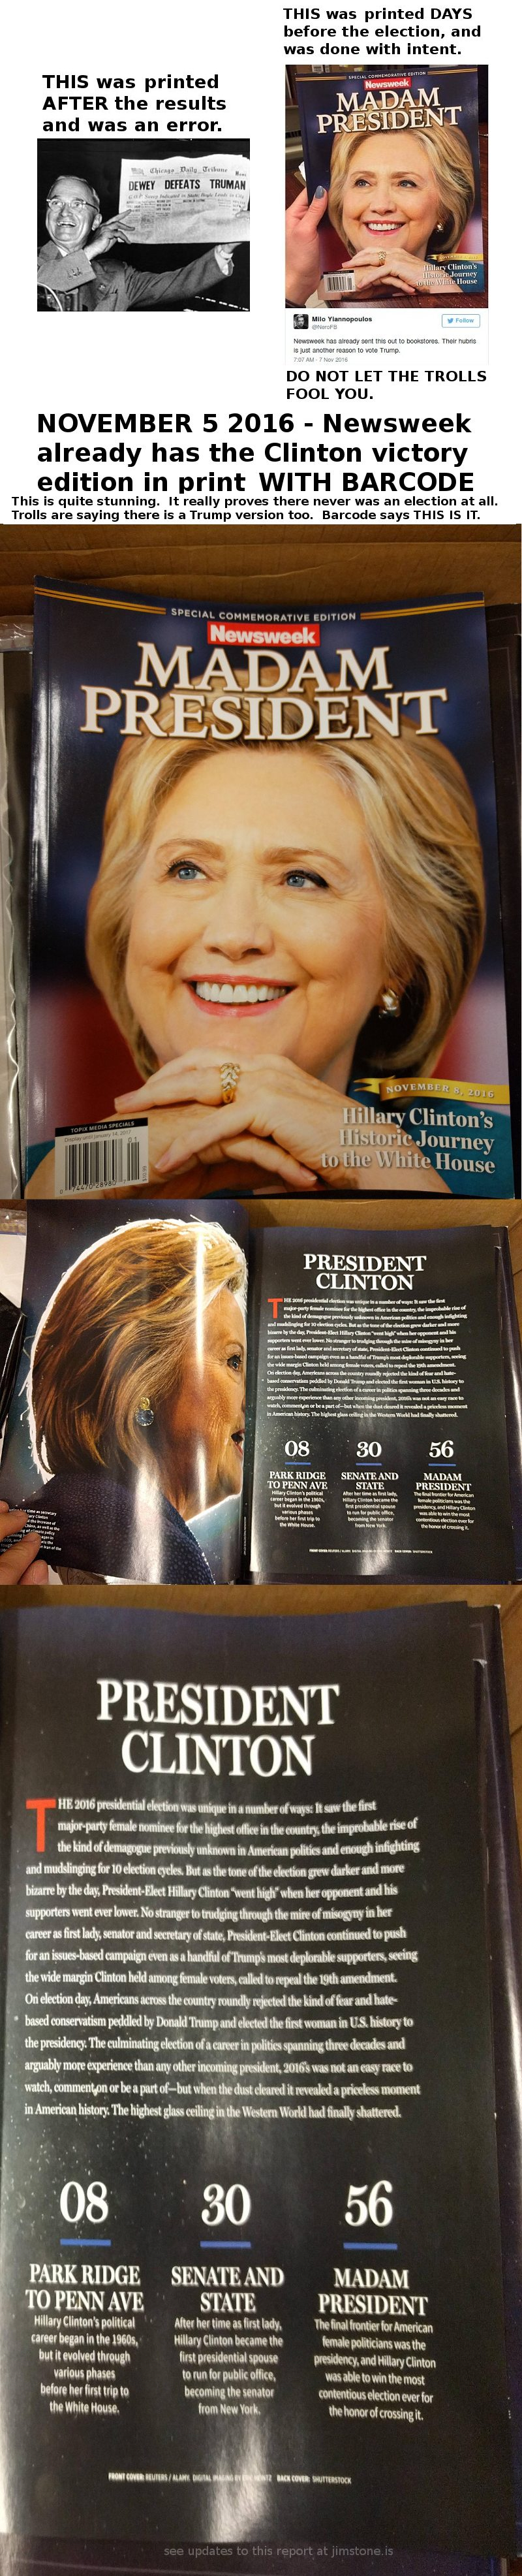 BUSTED: NEWSWEEK ALREADY HAS THE CLINTON VICTORY SPECIAL EDITION IN BOXES READY TO SHIP  Newsweek800